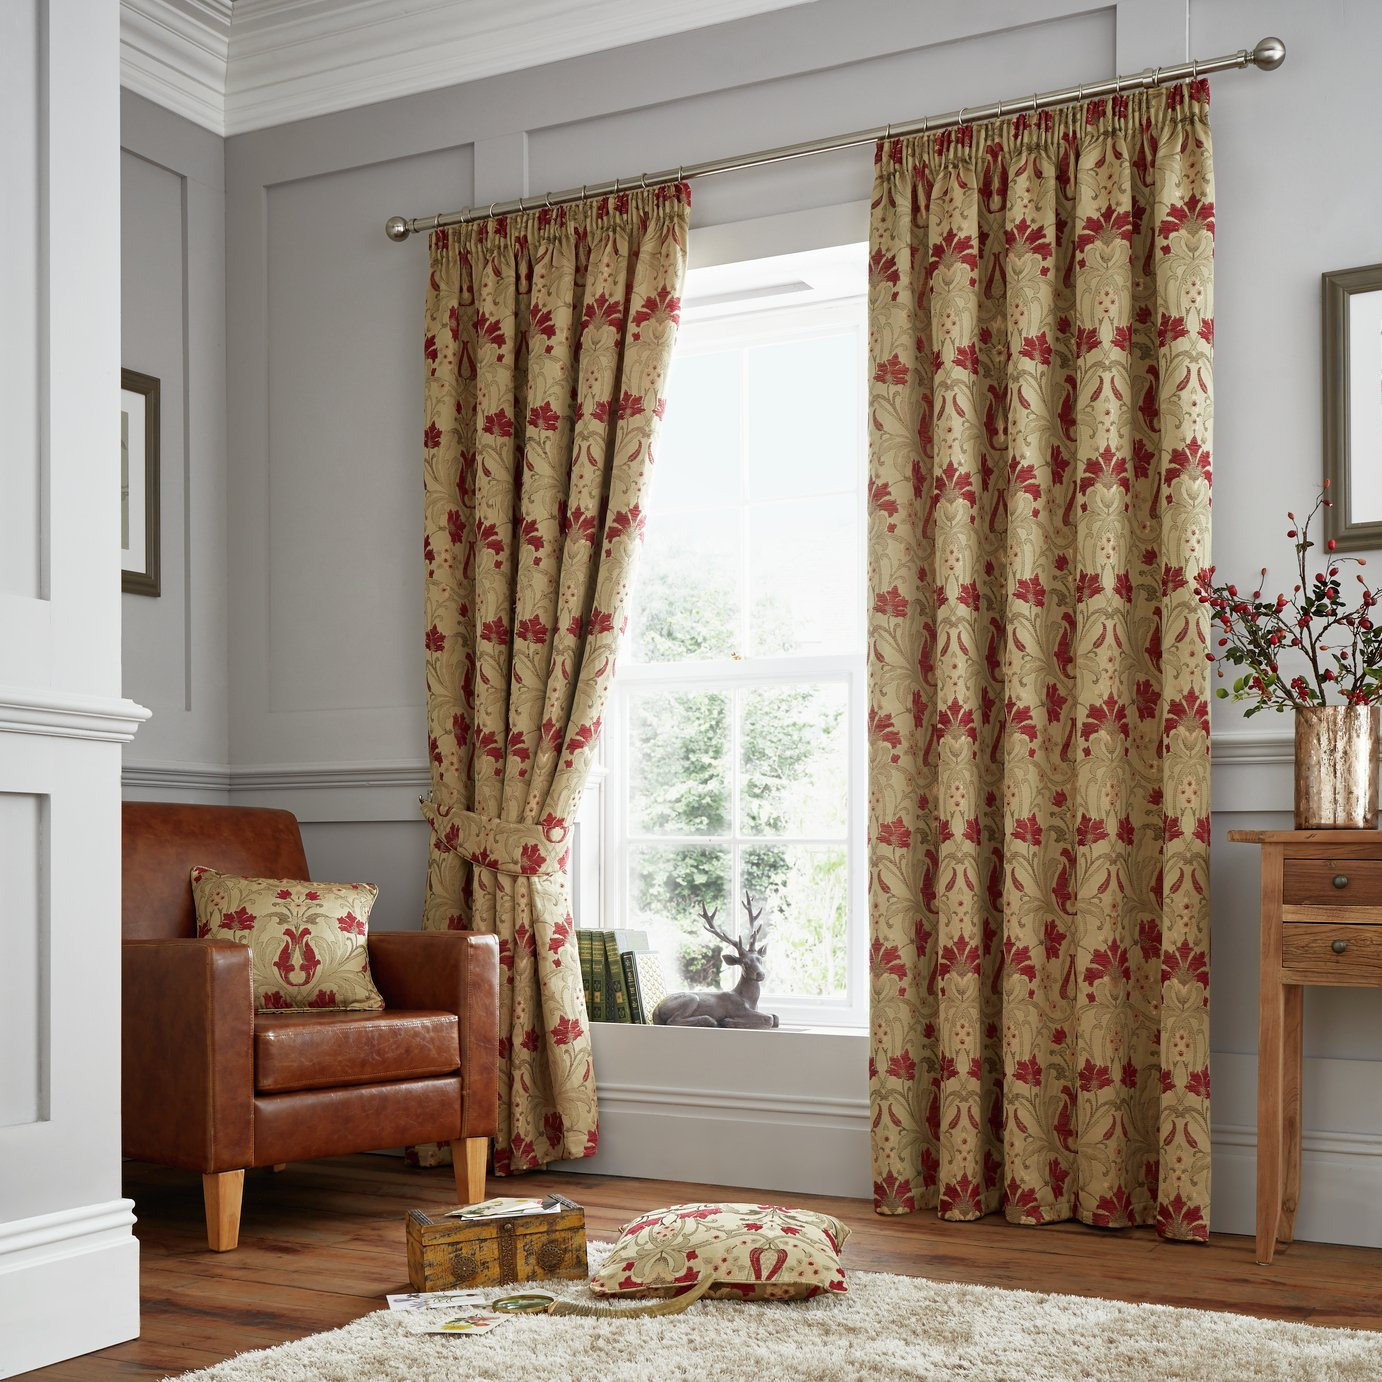 Image of Curtina Burford Curtains - 229x330cm - Red and Gold